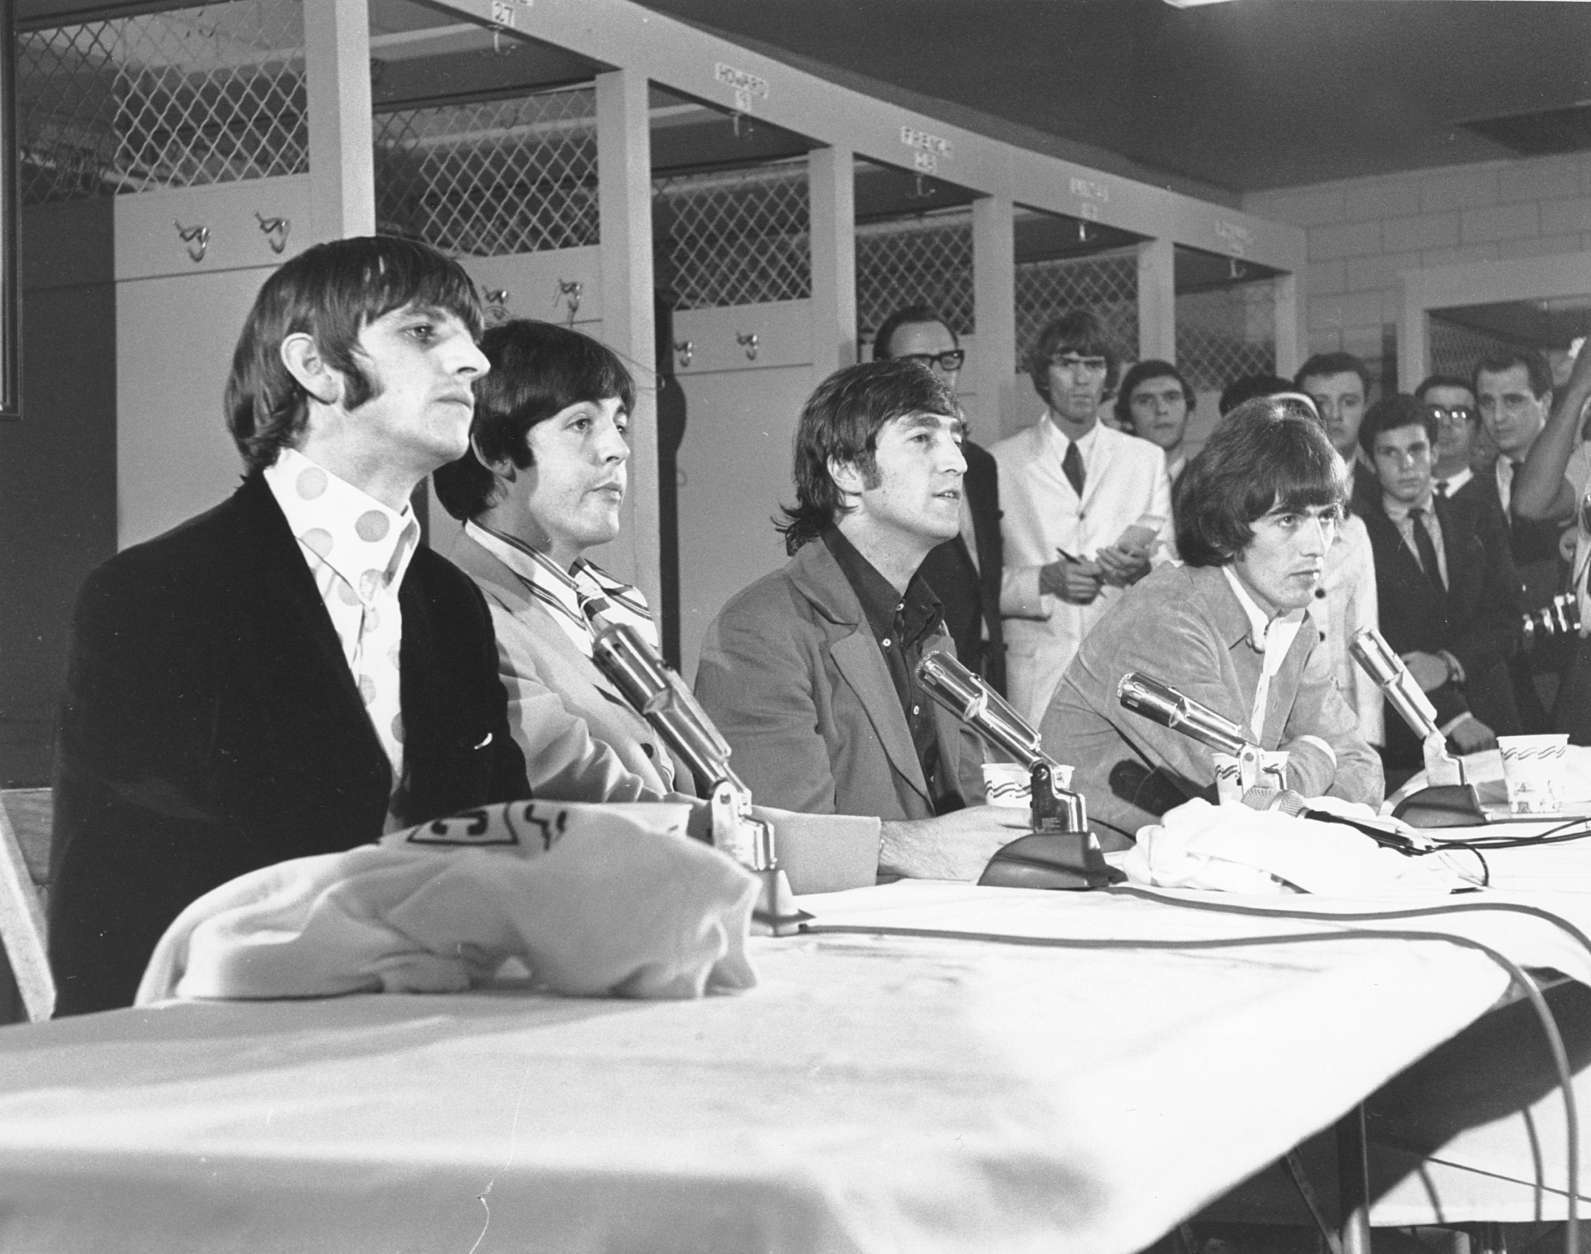 The British pop group, The Beatles, are seen holding a news conference at the District of Columbia stadium in Washington before their concert on Aug. 15, 1966.  Pictured, from left to right, are: Ringo Starr, Paul McCartney, John Lennon and George Harrison. (AP Photo/Harvey Georges)